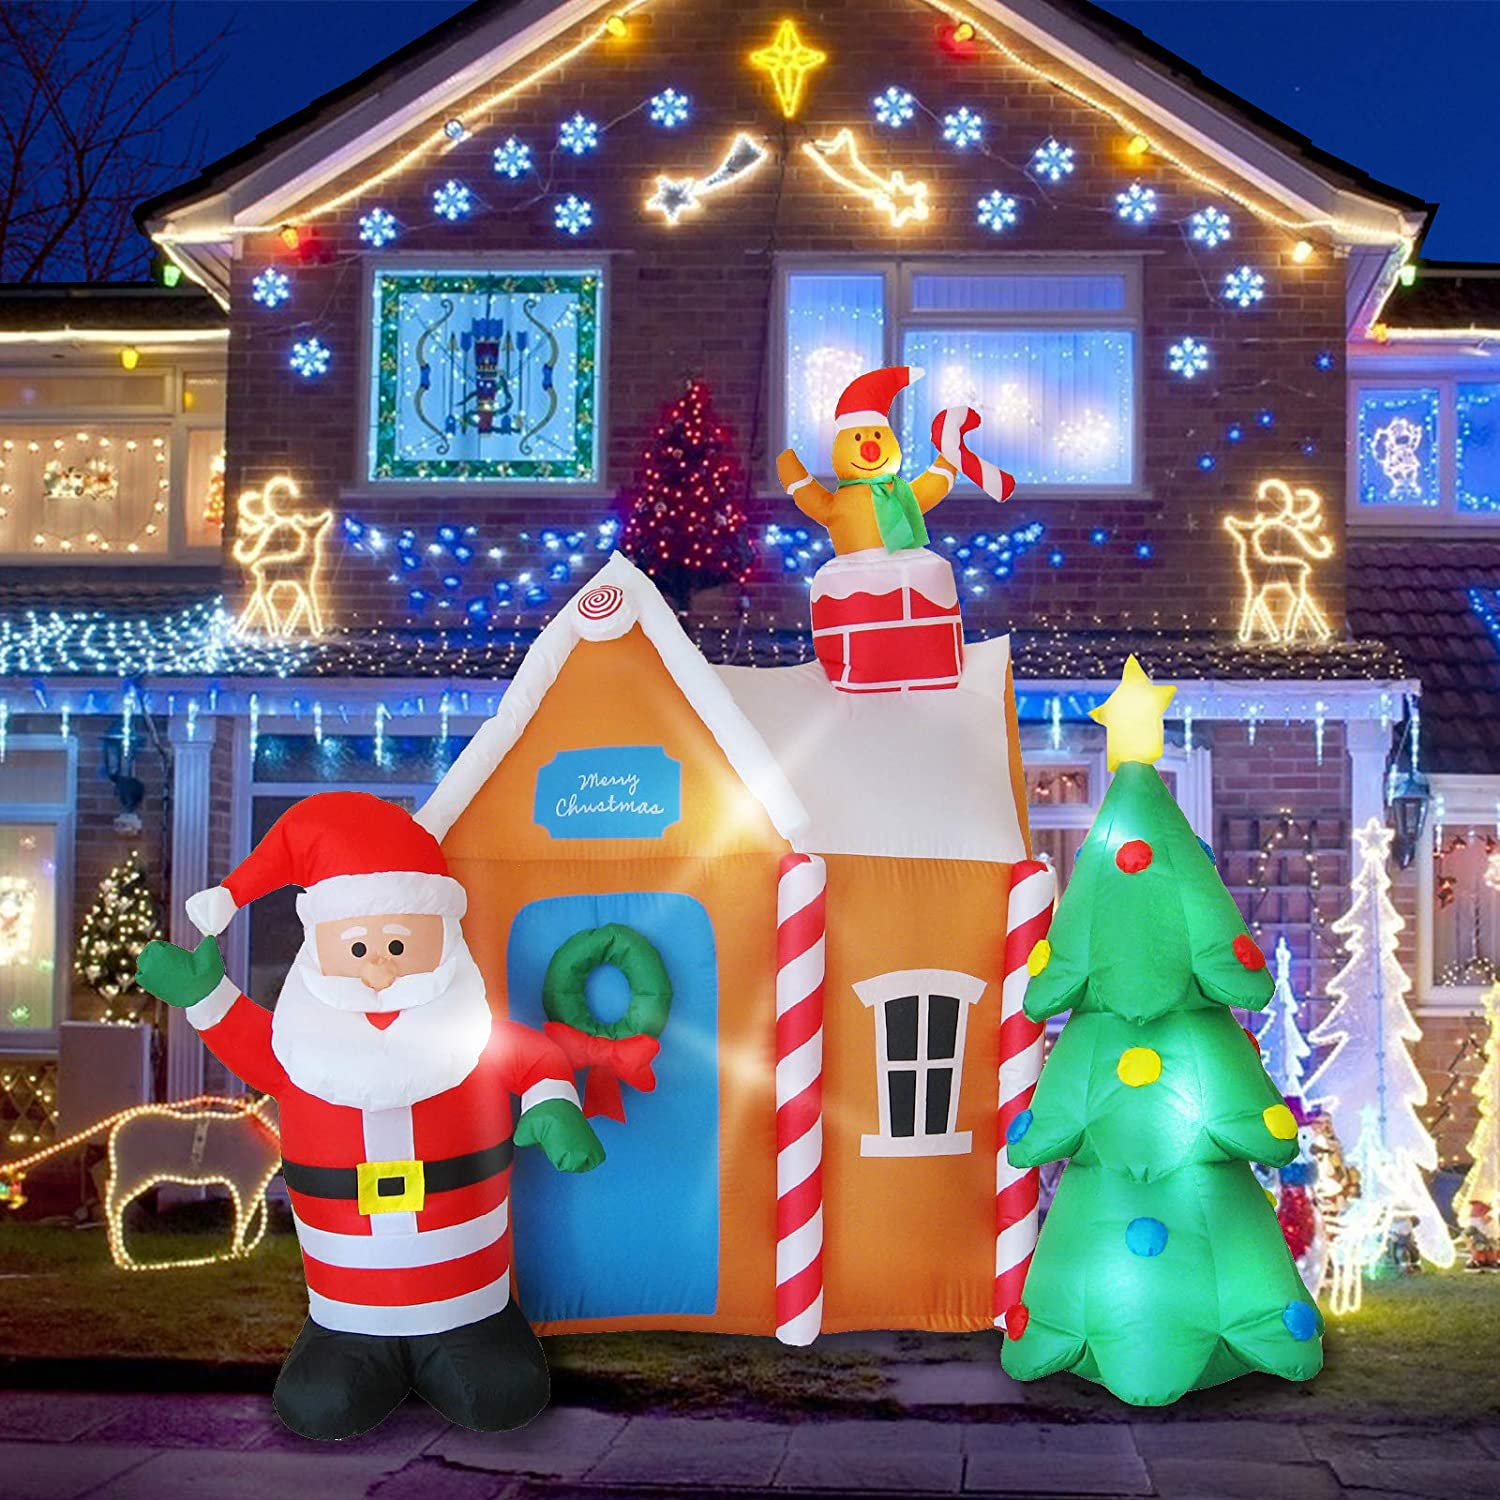 Evoio 6 Ft Christmas Inflatables Blow Up Yard Outdoor Decorations, Gingerbread House with Santa Claus & Christmas Tree, LED Glow up Inflatable Christmas Decorations for Outdoor Yard Garden